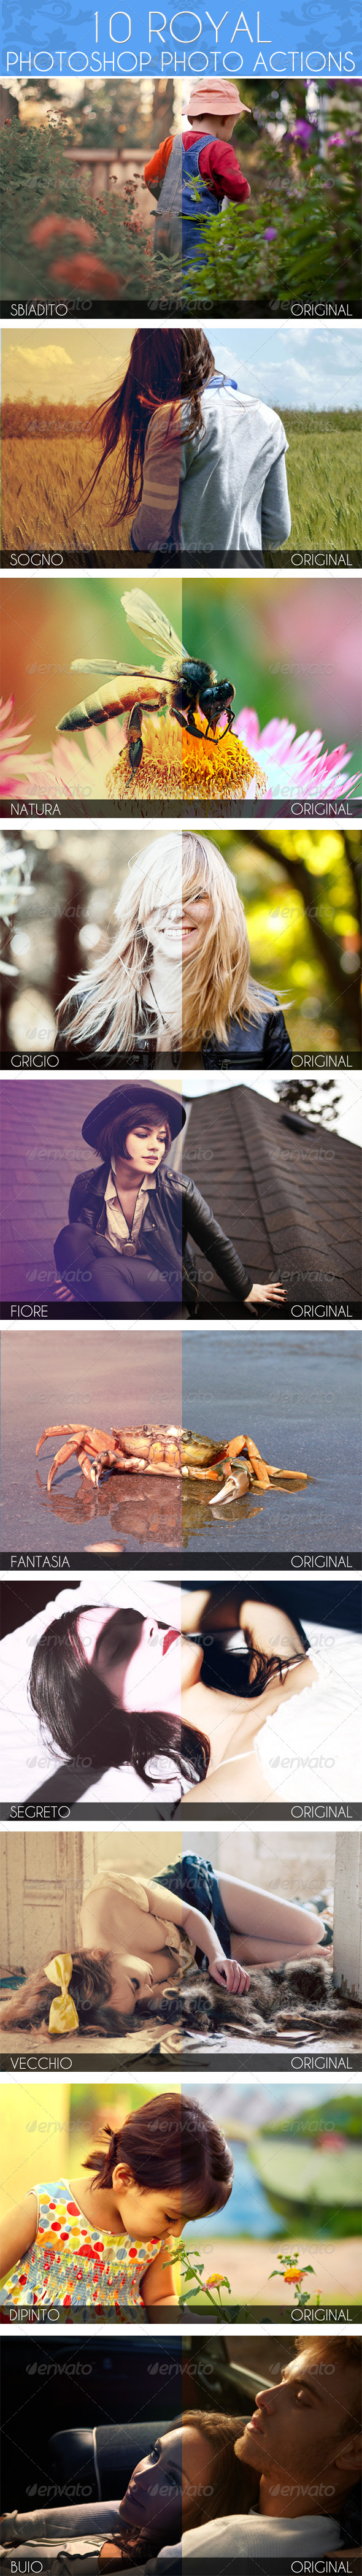 10 Royal PS Photo Actions - Photo Effects Actions